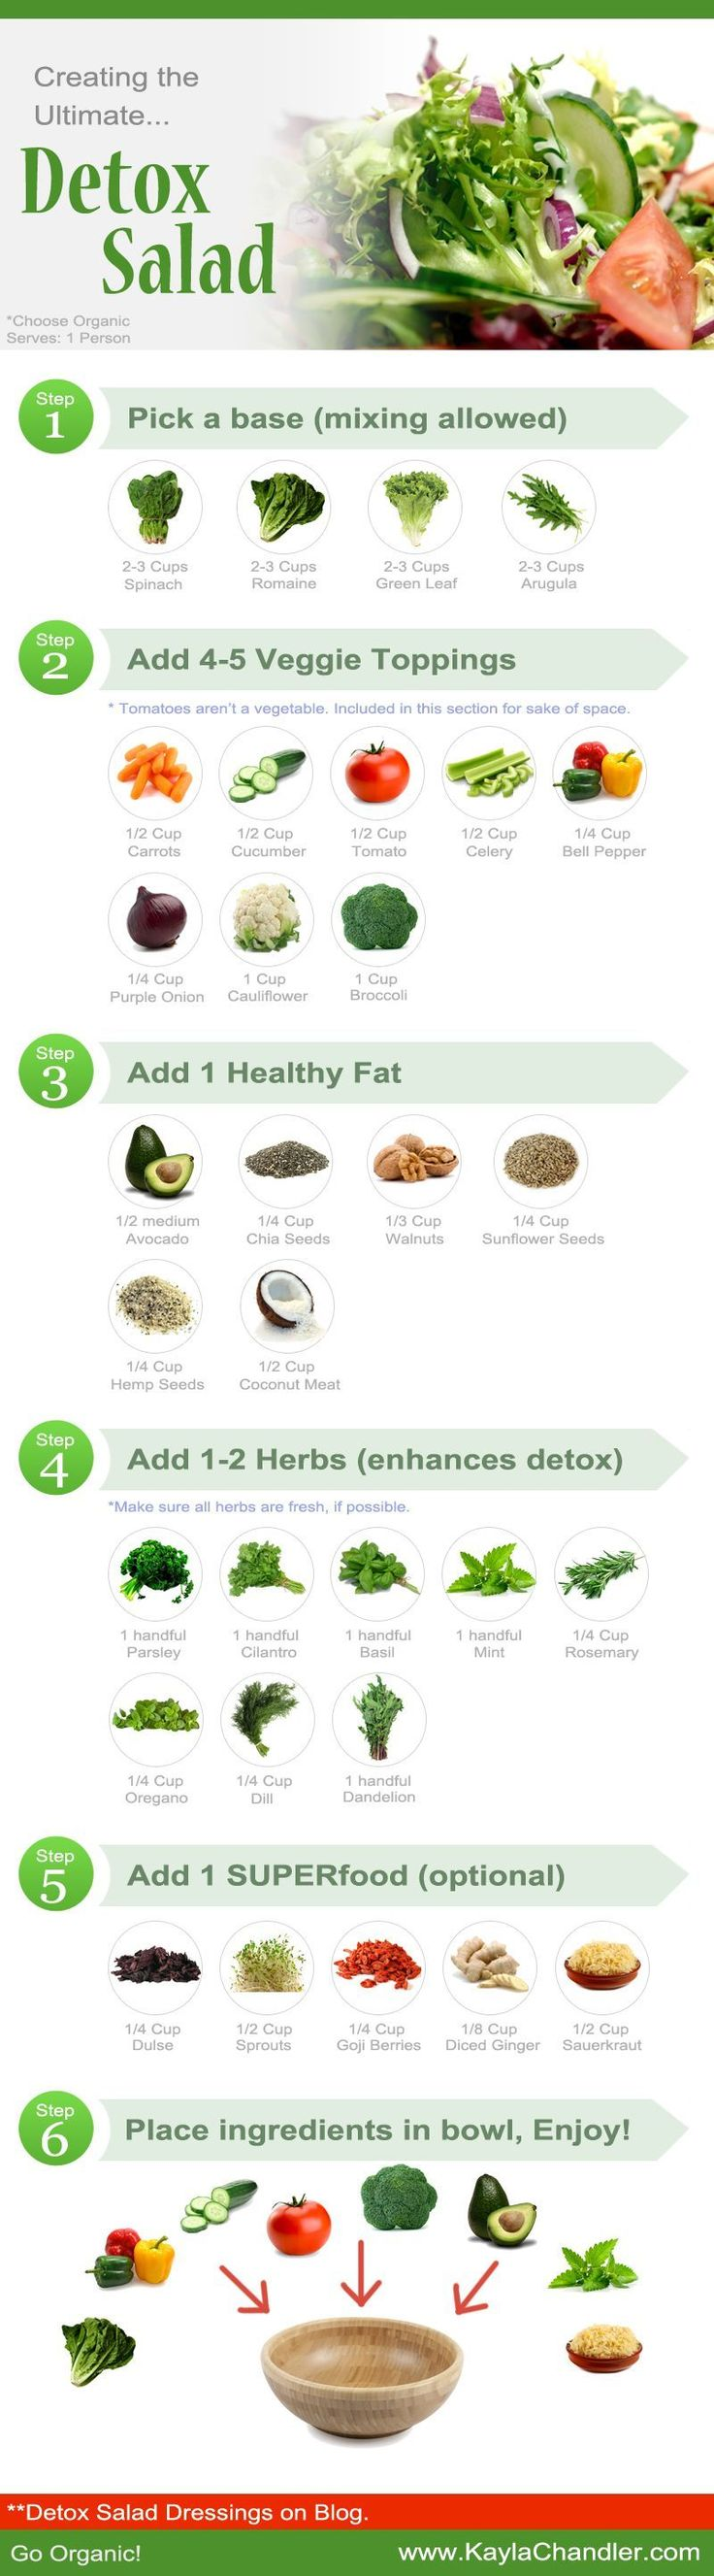 Creating the Ultimate Detox Salad.. plus DIY Healthy Salad Dressings included...saving this image to my phone! #detox #salads #HealthyDetoxDiet #DetoxDietSalad